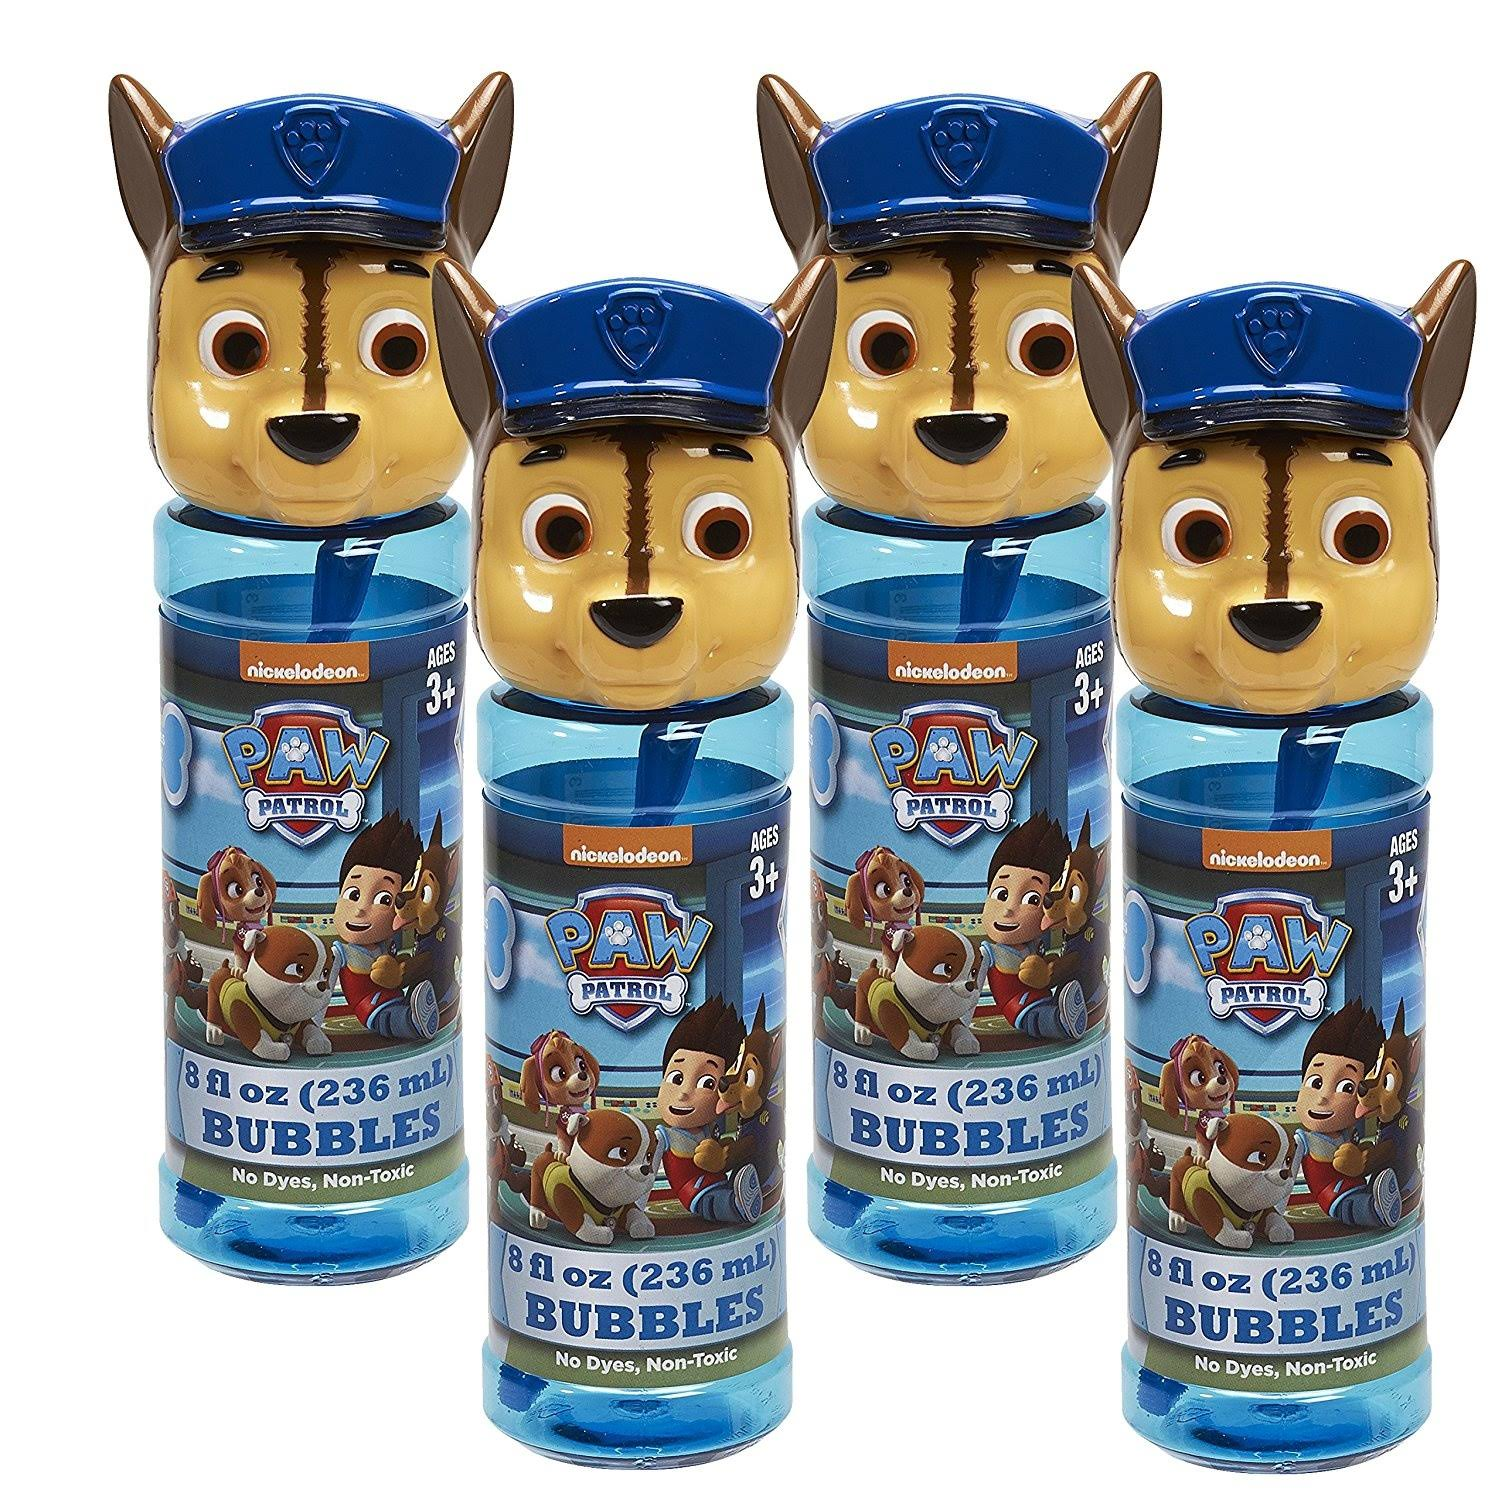 Little Kids Inc. Paw Patrol 4-pc. Bubble Heads with Wand - Chase Blue